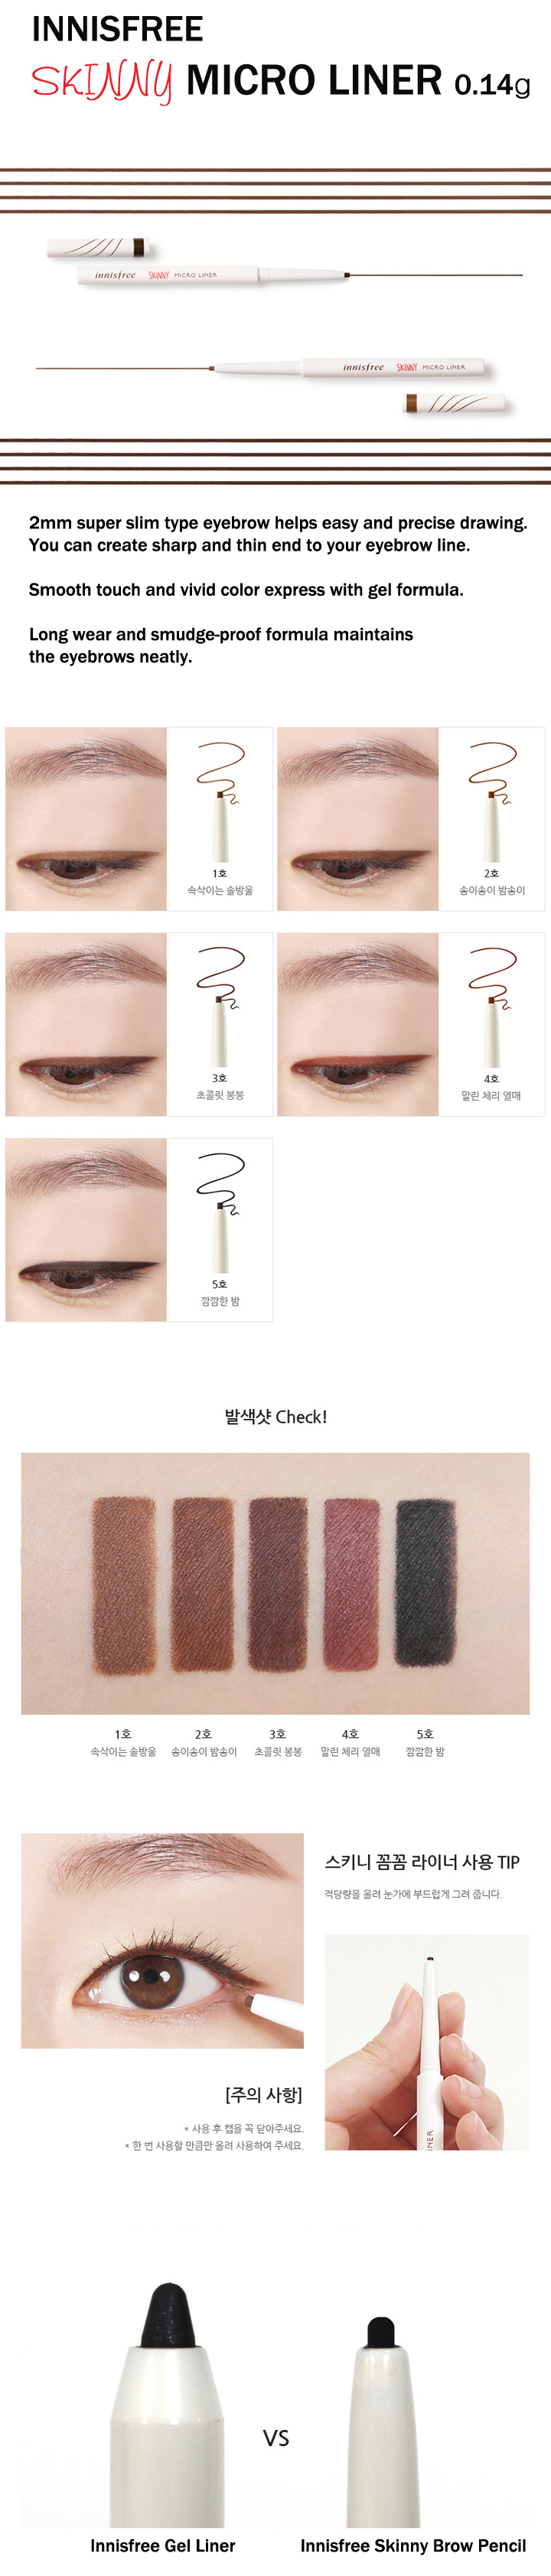 INNISFREE Skinny Micro Liner [04 Dried Cherry]